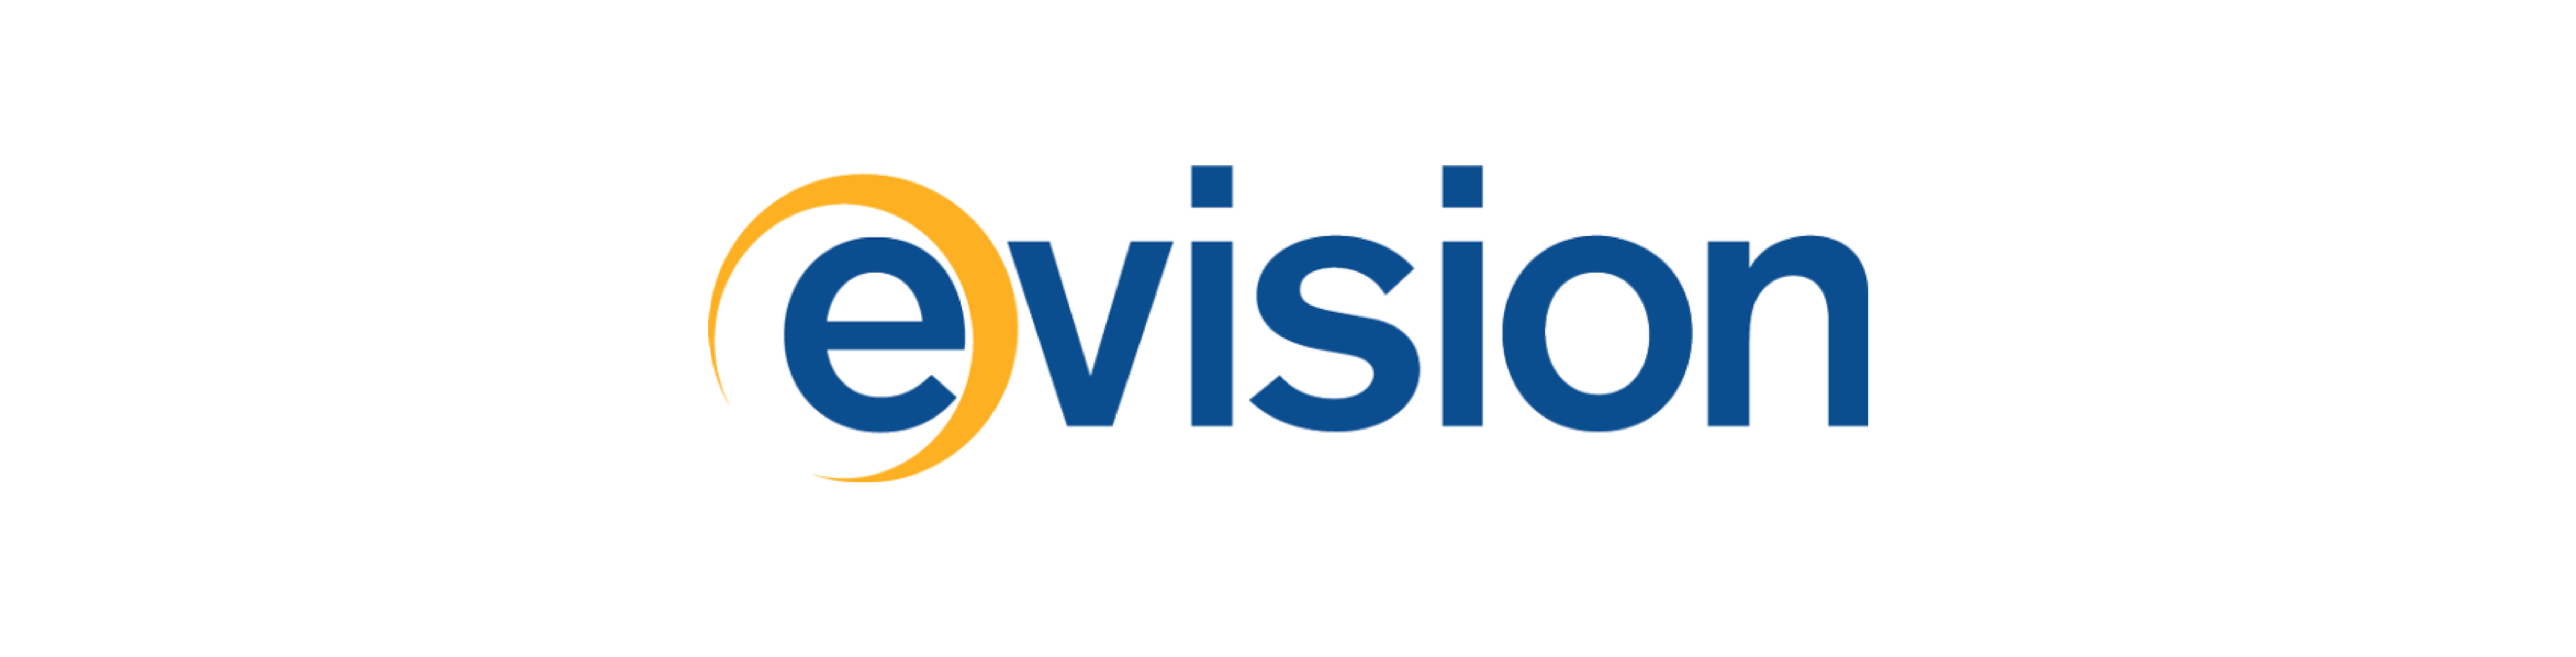 evision-3